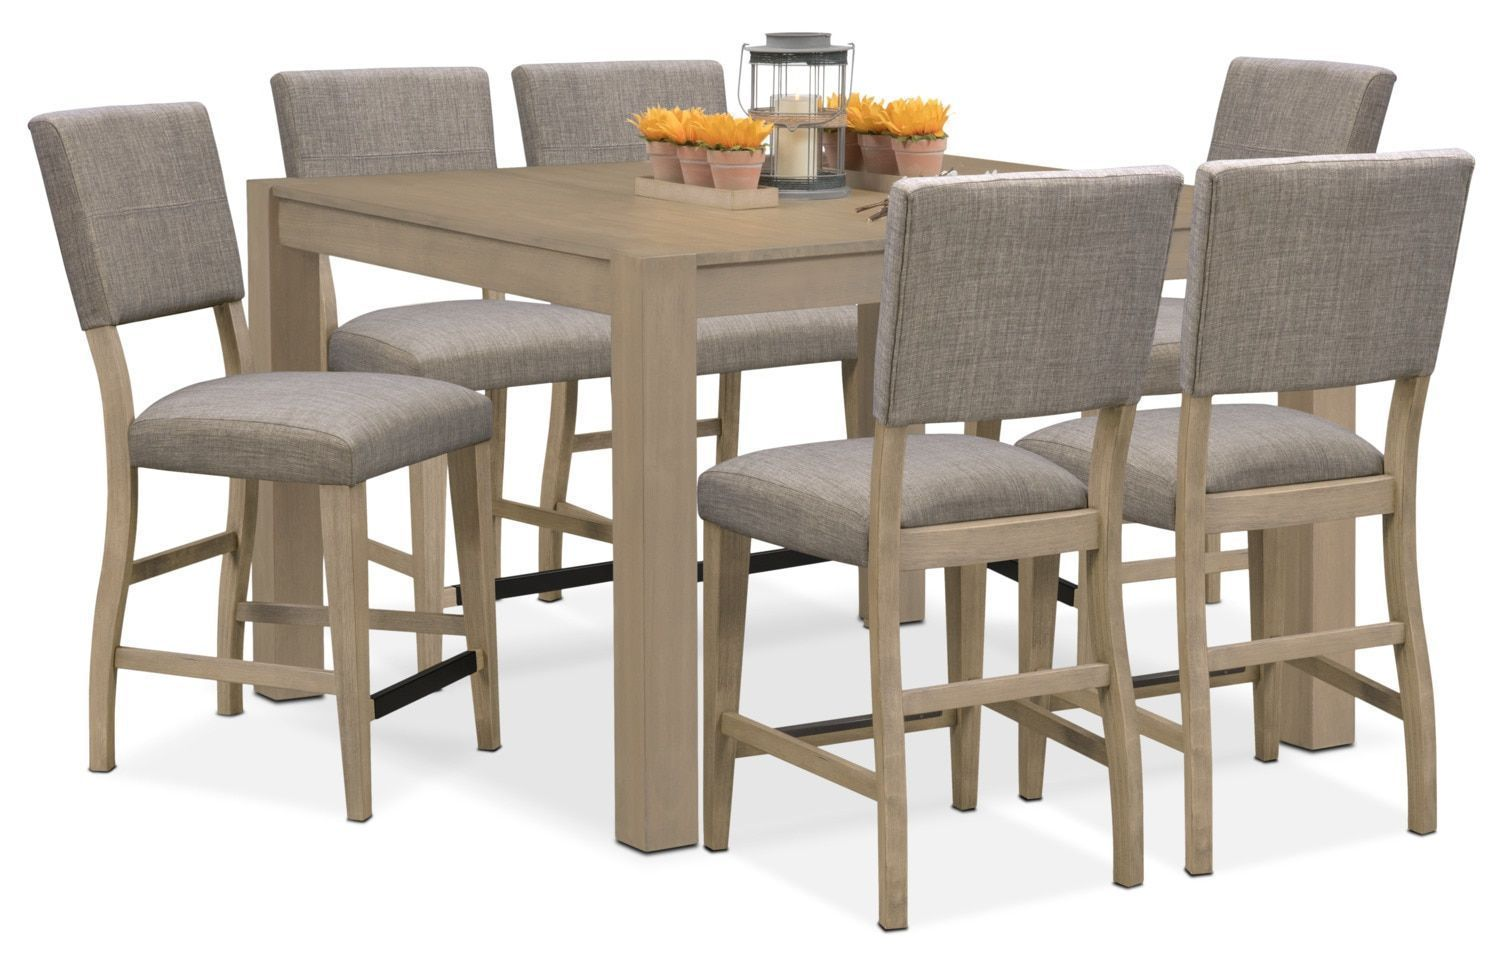 Tribeca counterheight table and upholstered side chairs gray